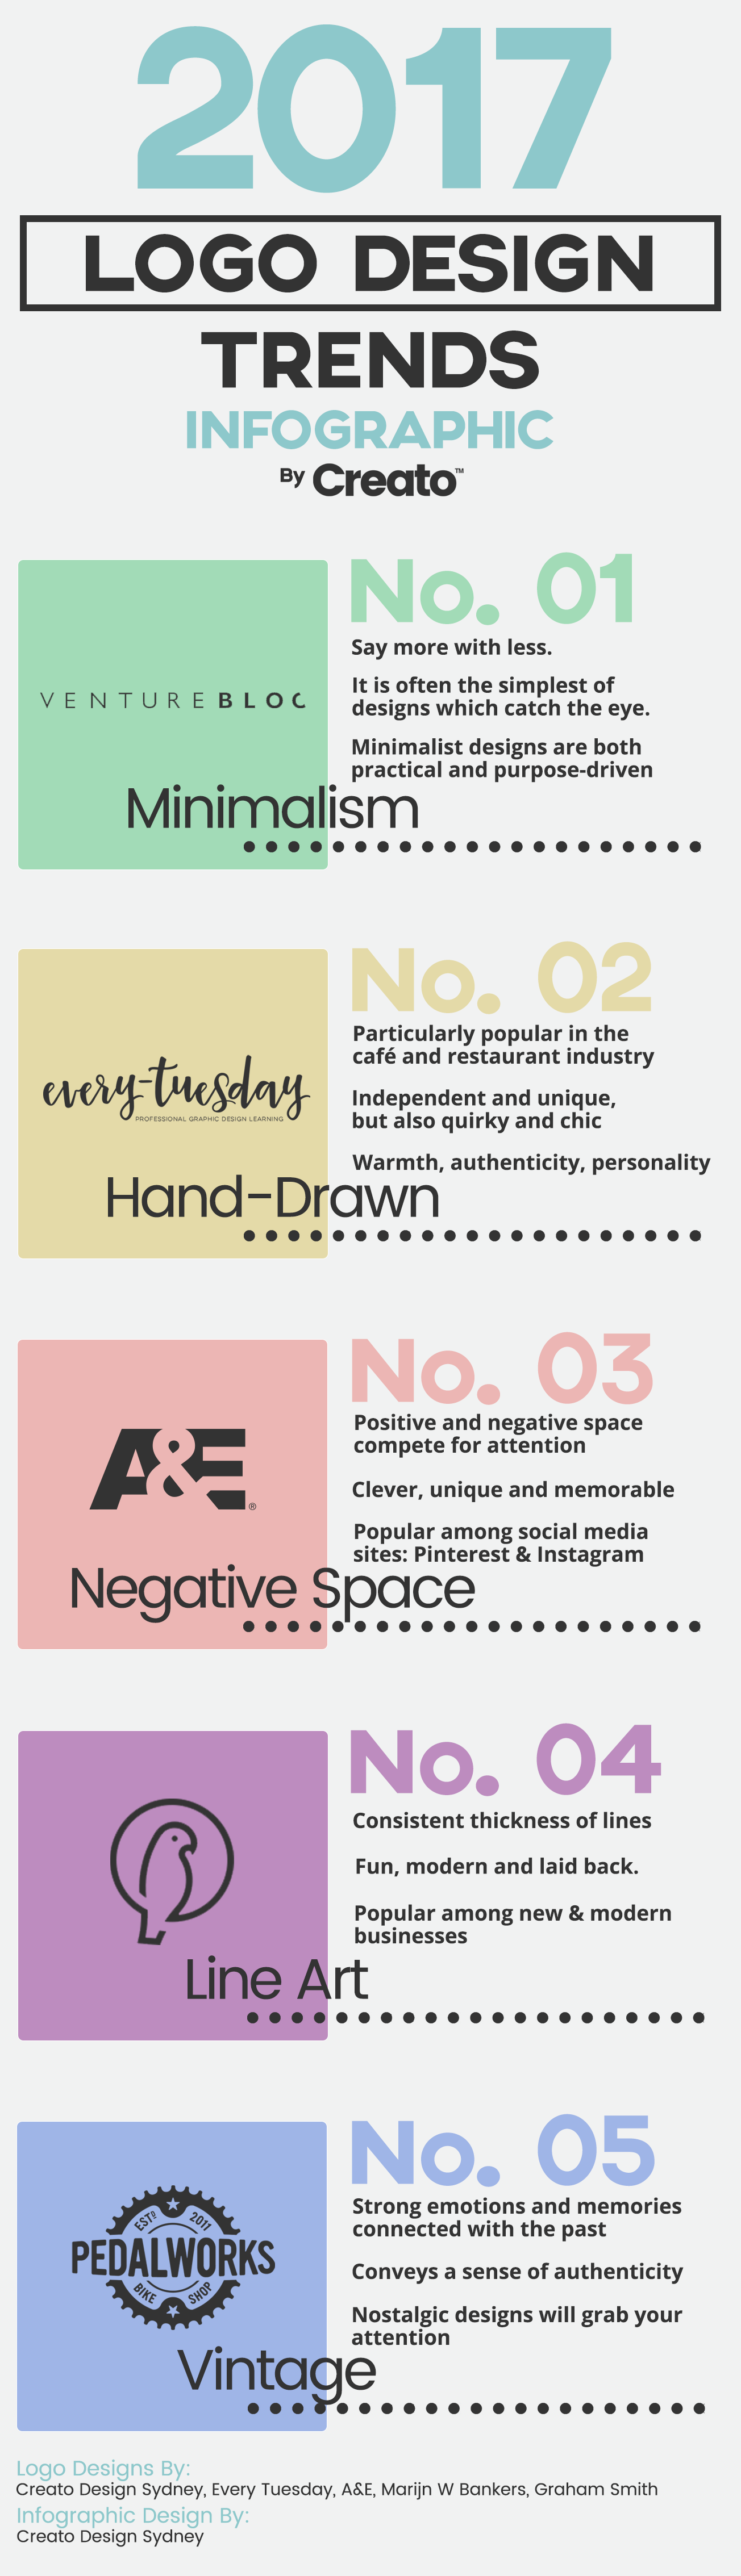 2017 logo design trends infographic